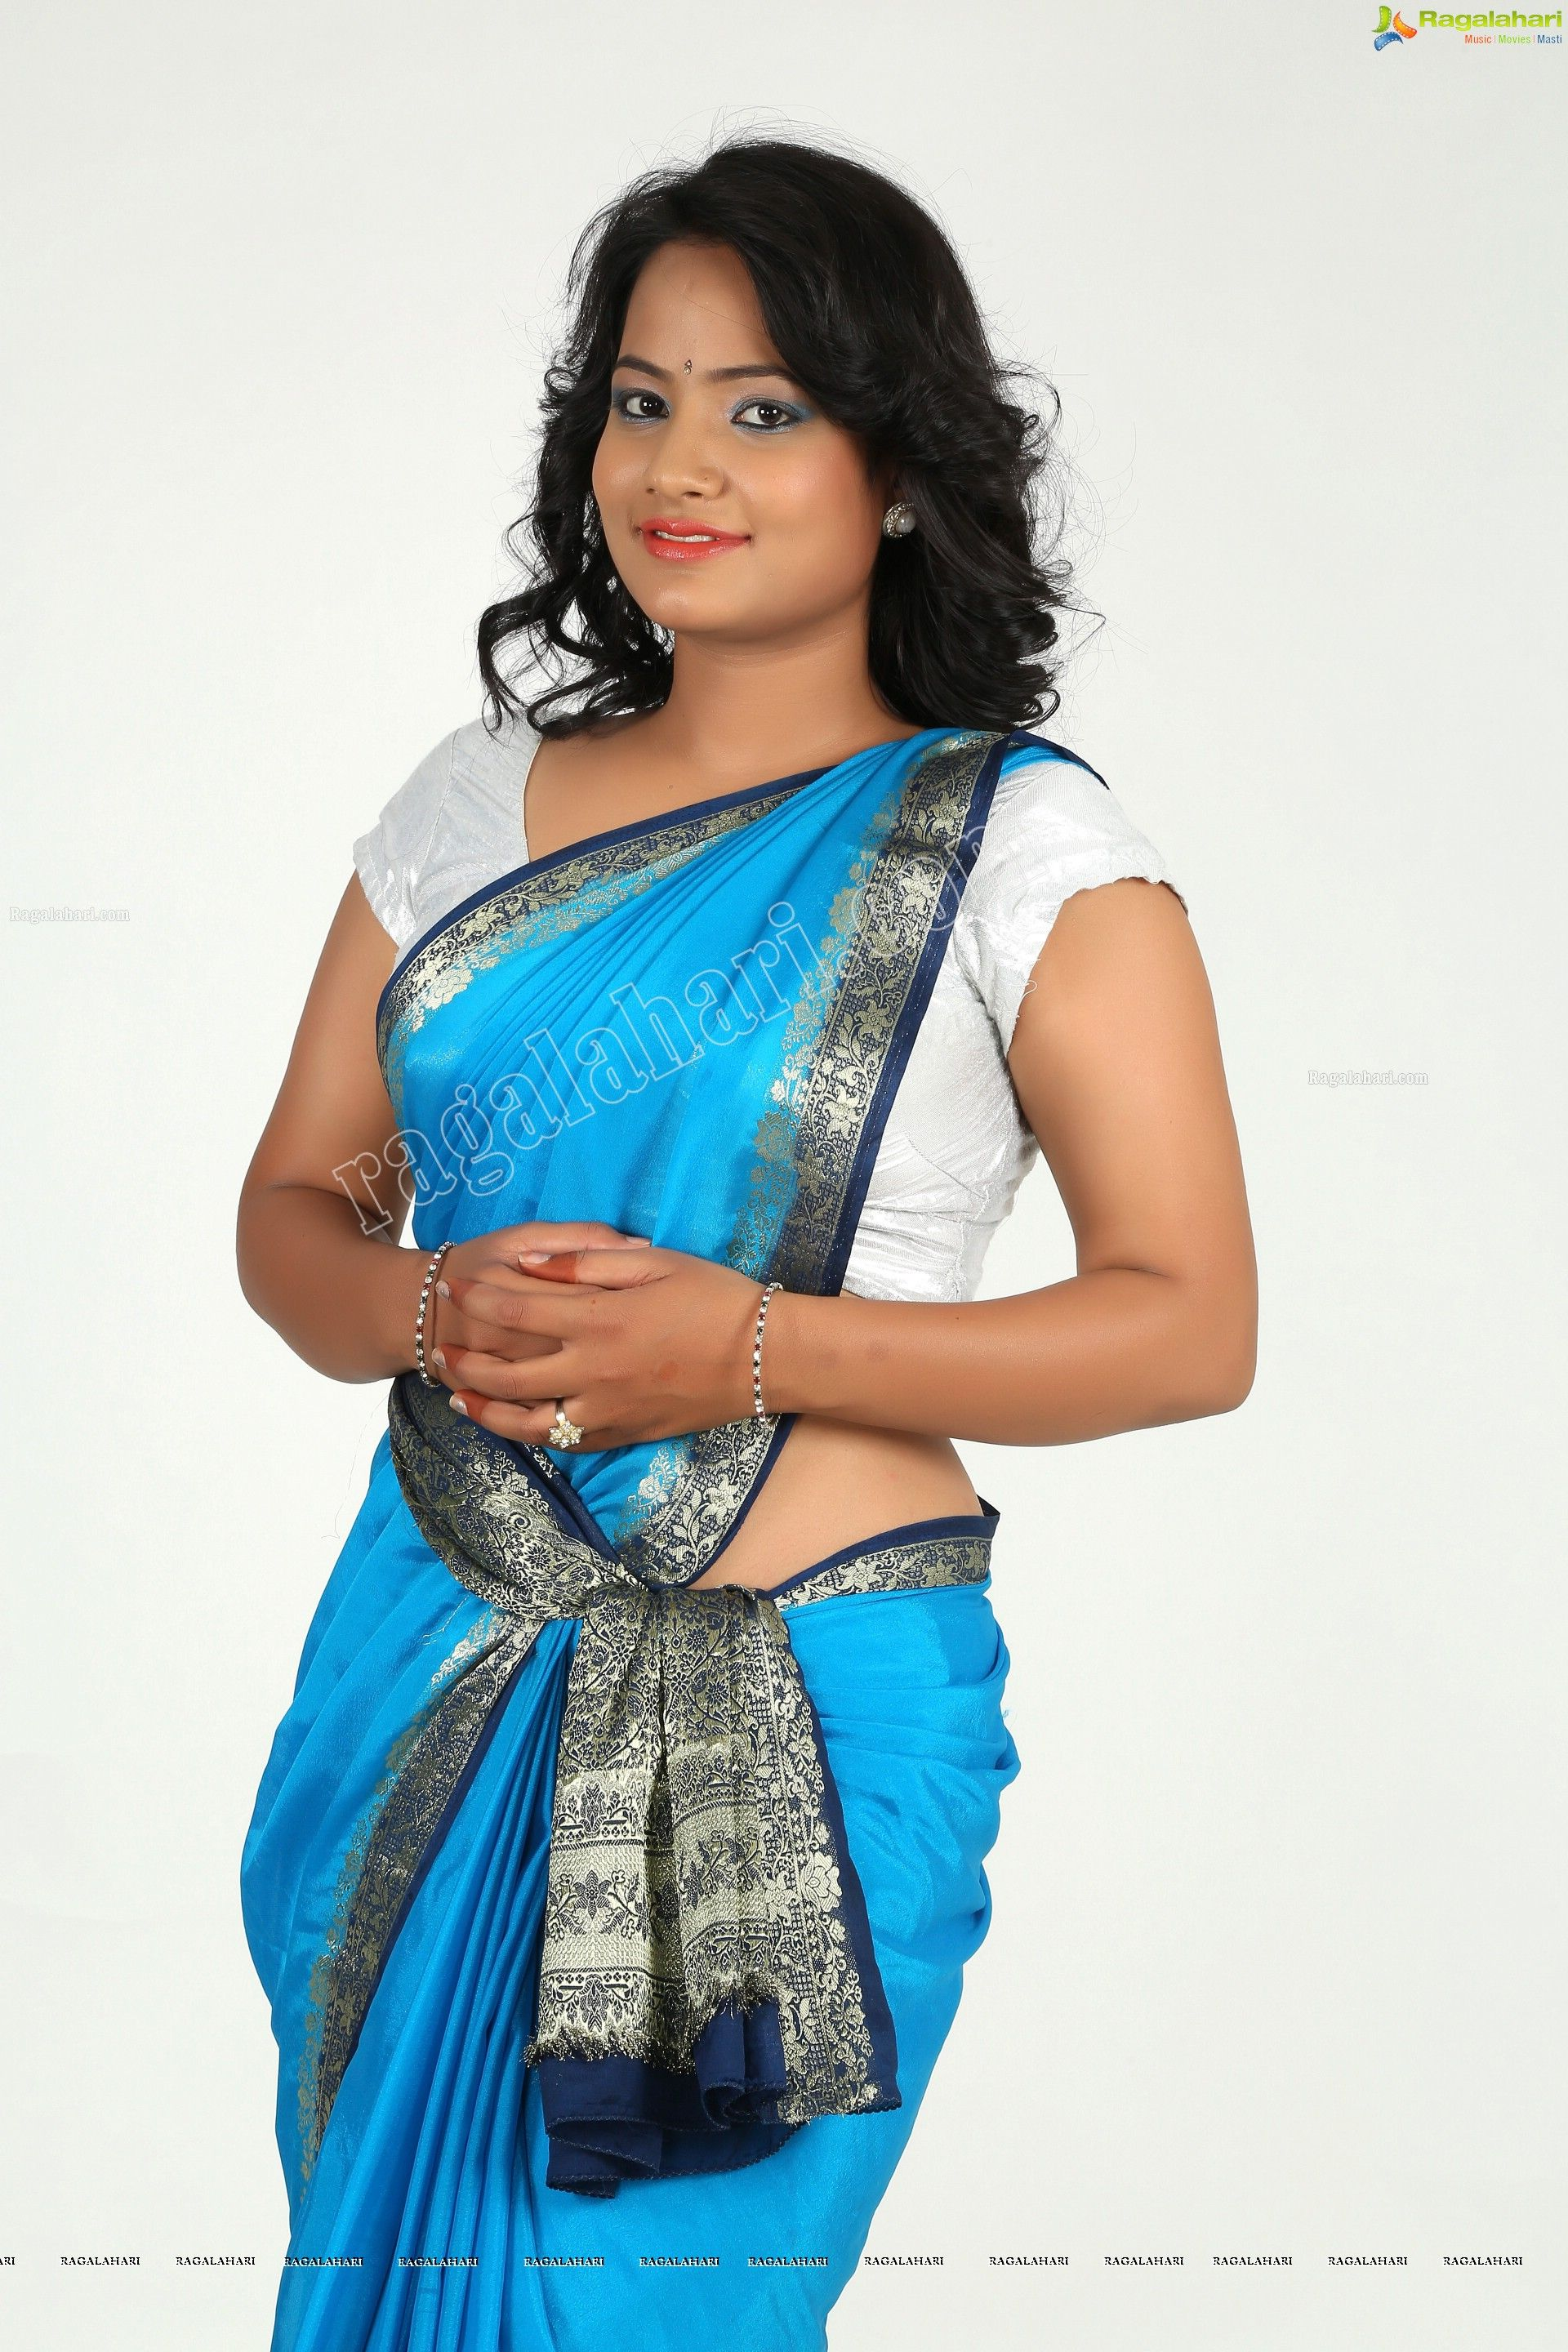 saritha sharma glam stills - saritha sharma in blue saree - saritha